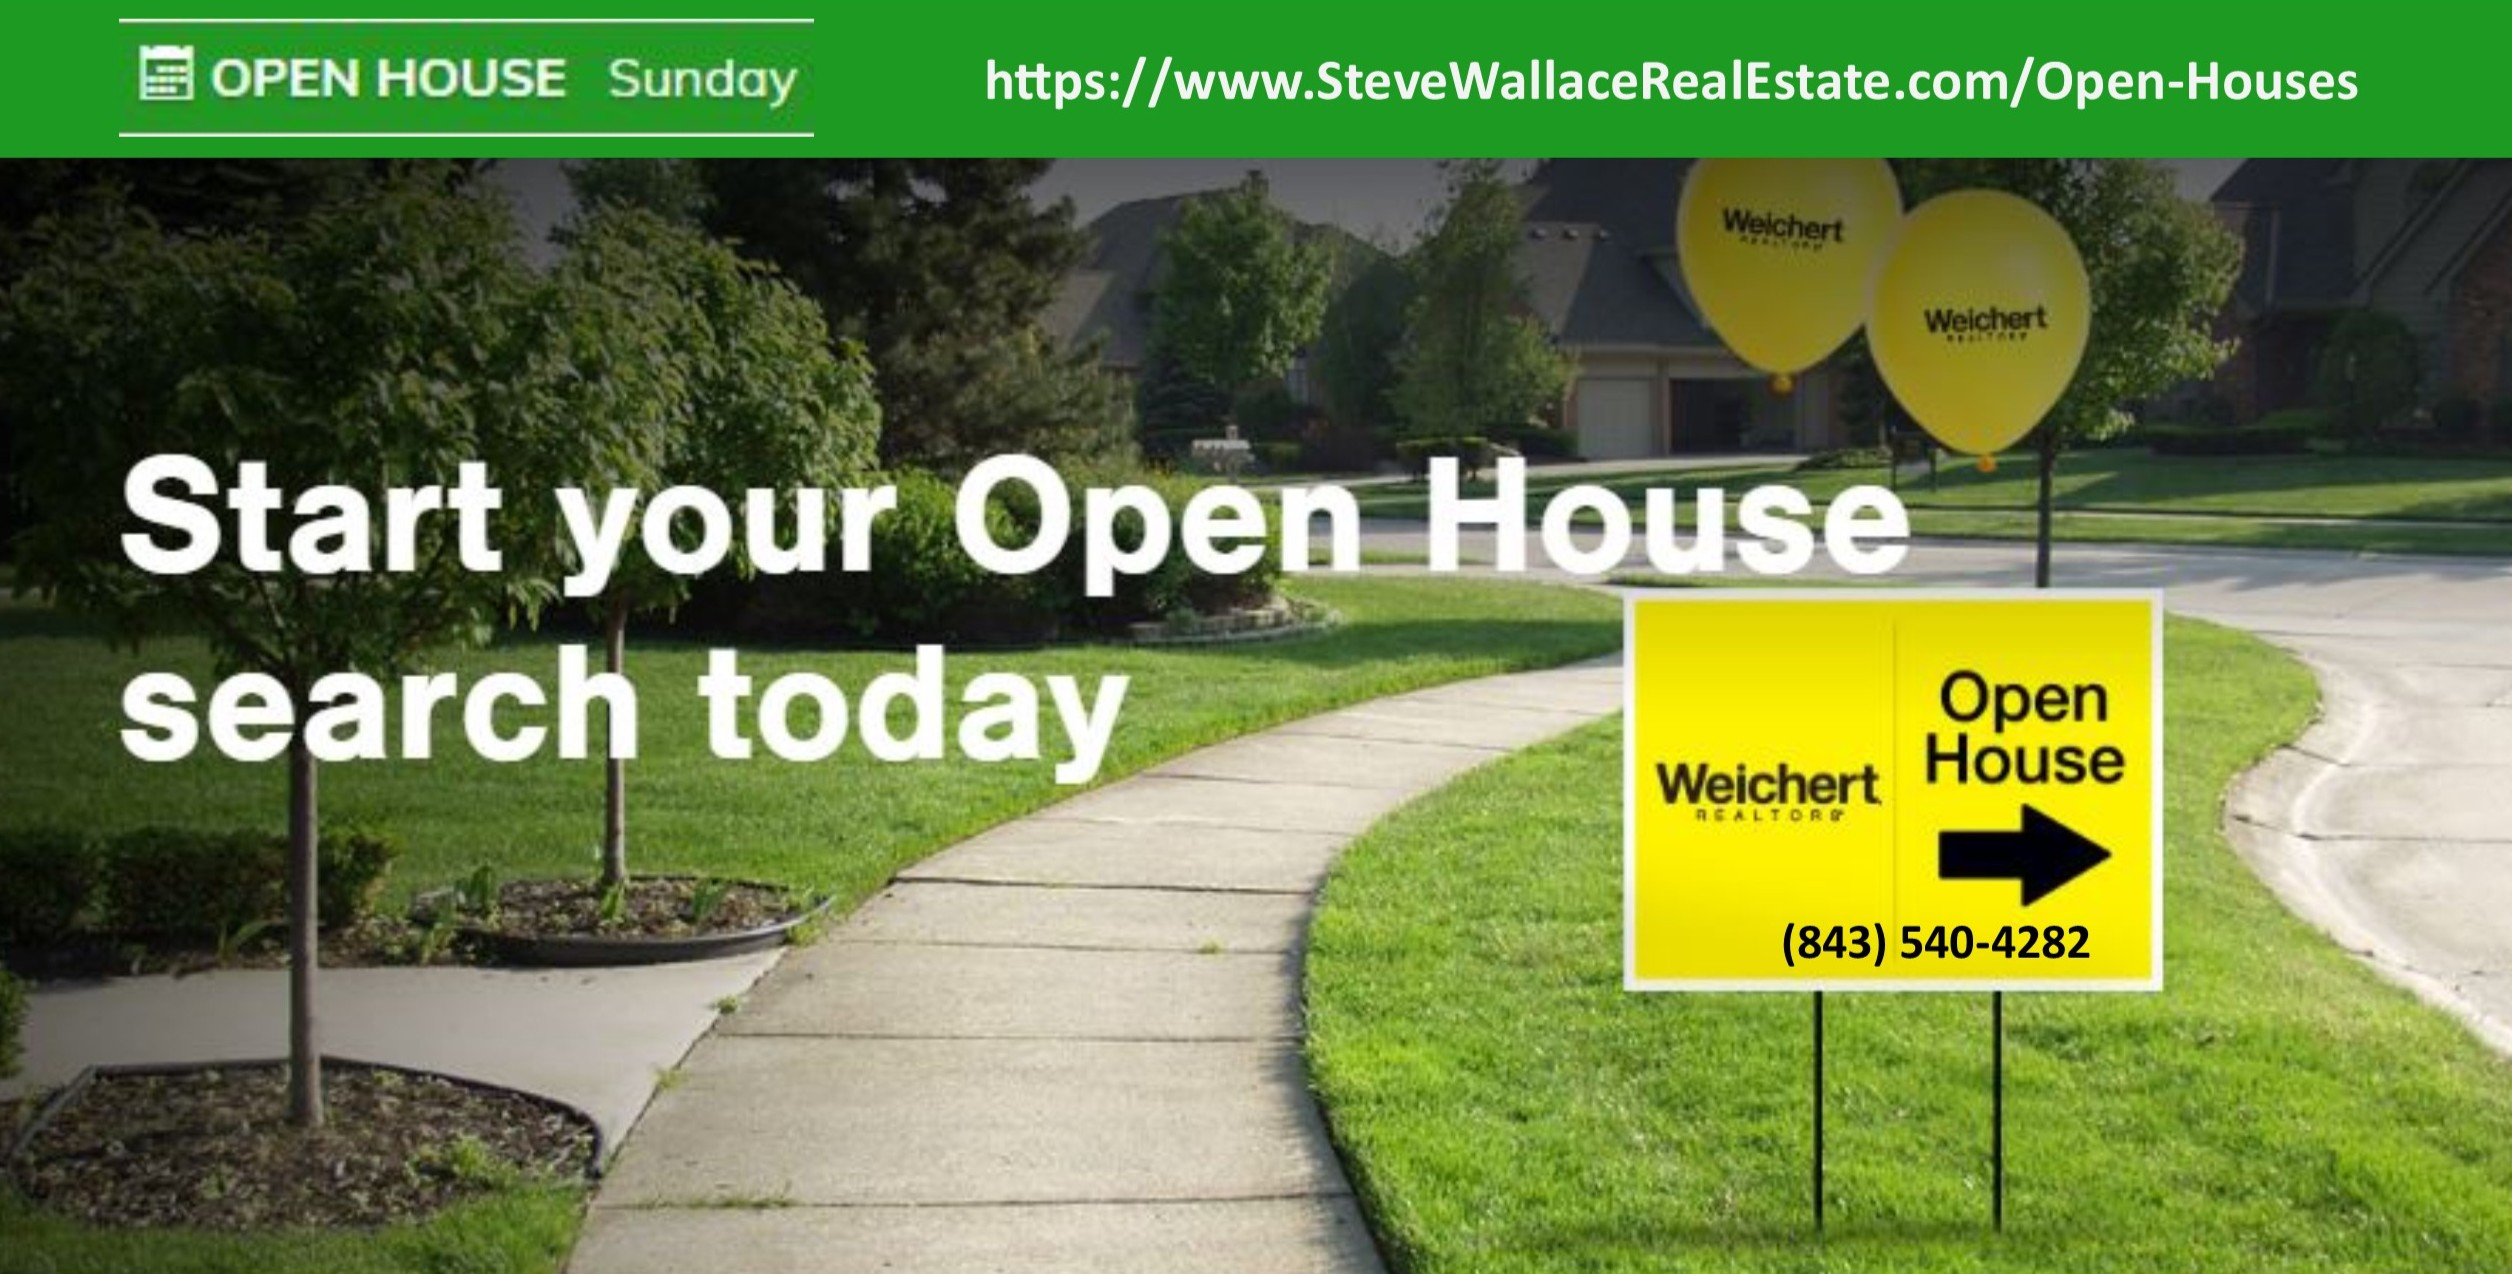 Sell Your Home, Open Houses, Home Buyers, Tour, Showings